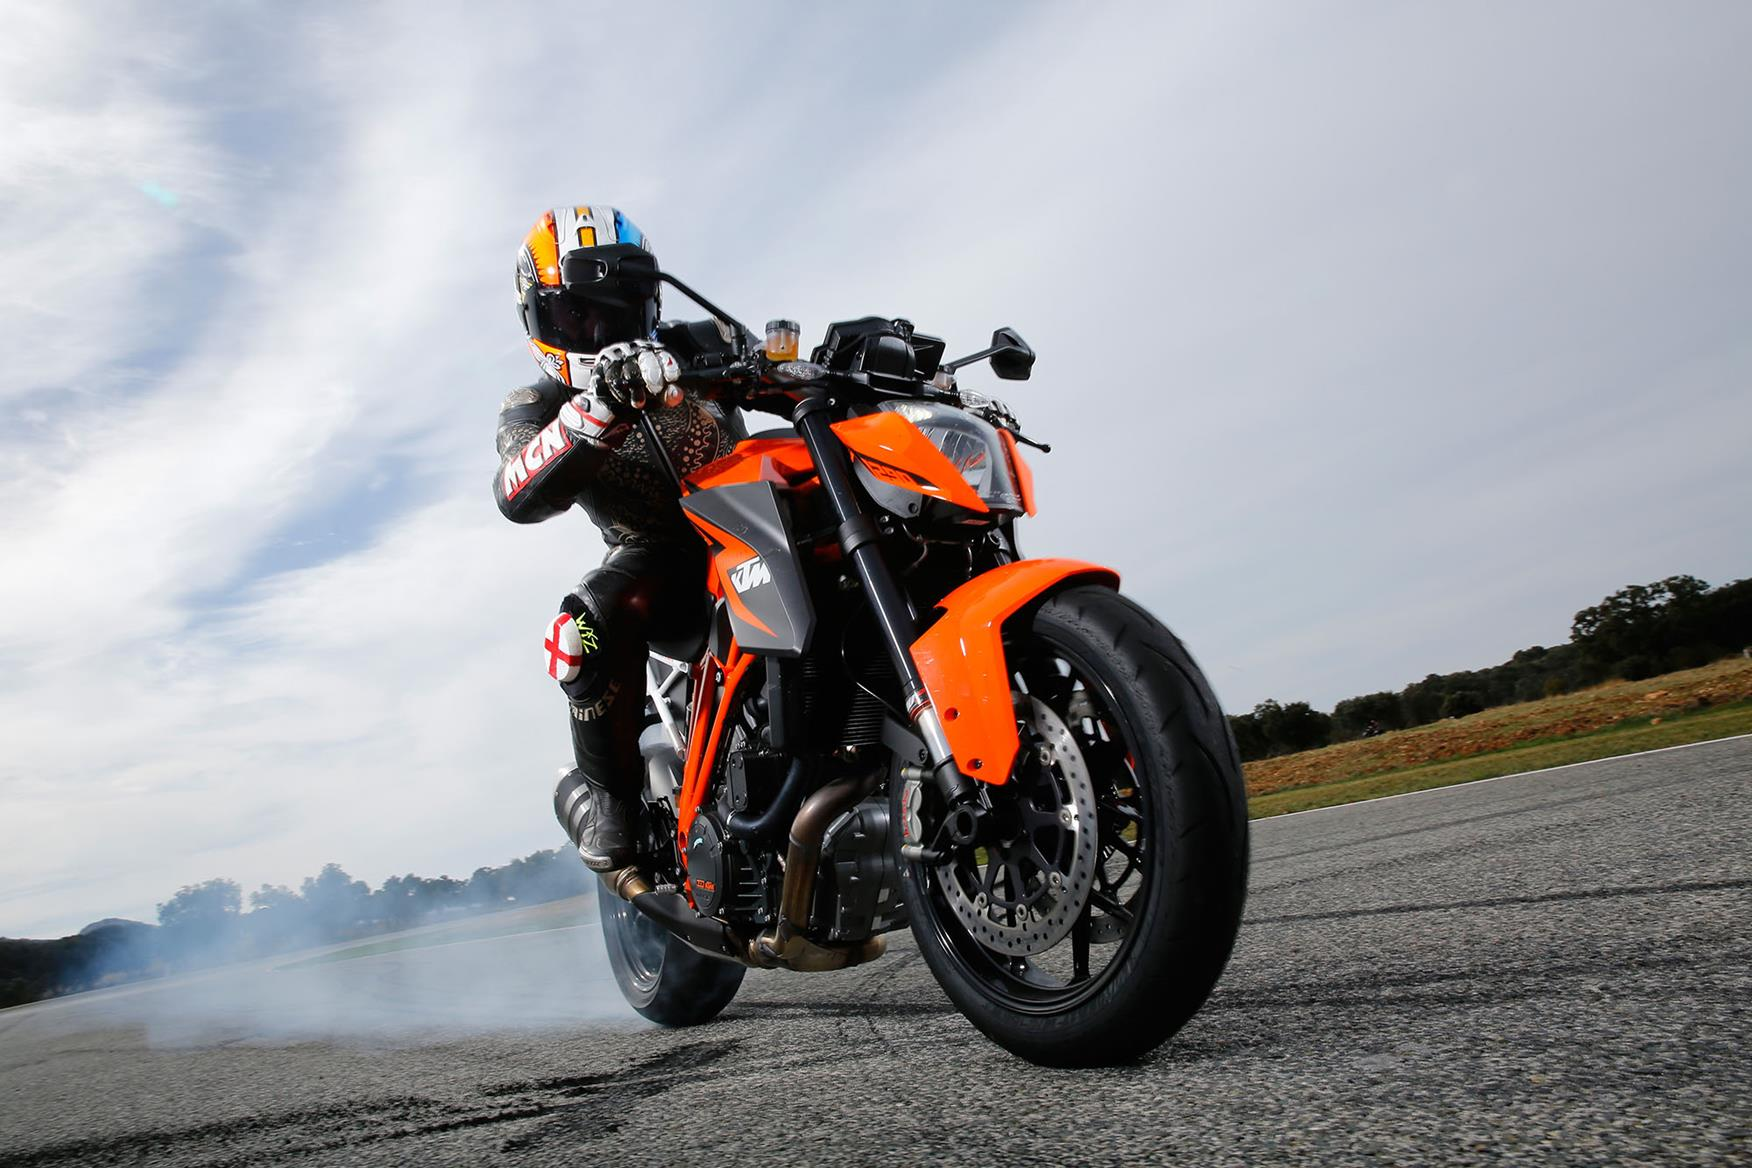 KTM 1290 Super Duke R burnout